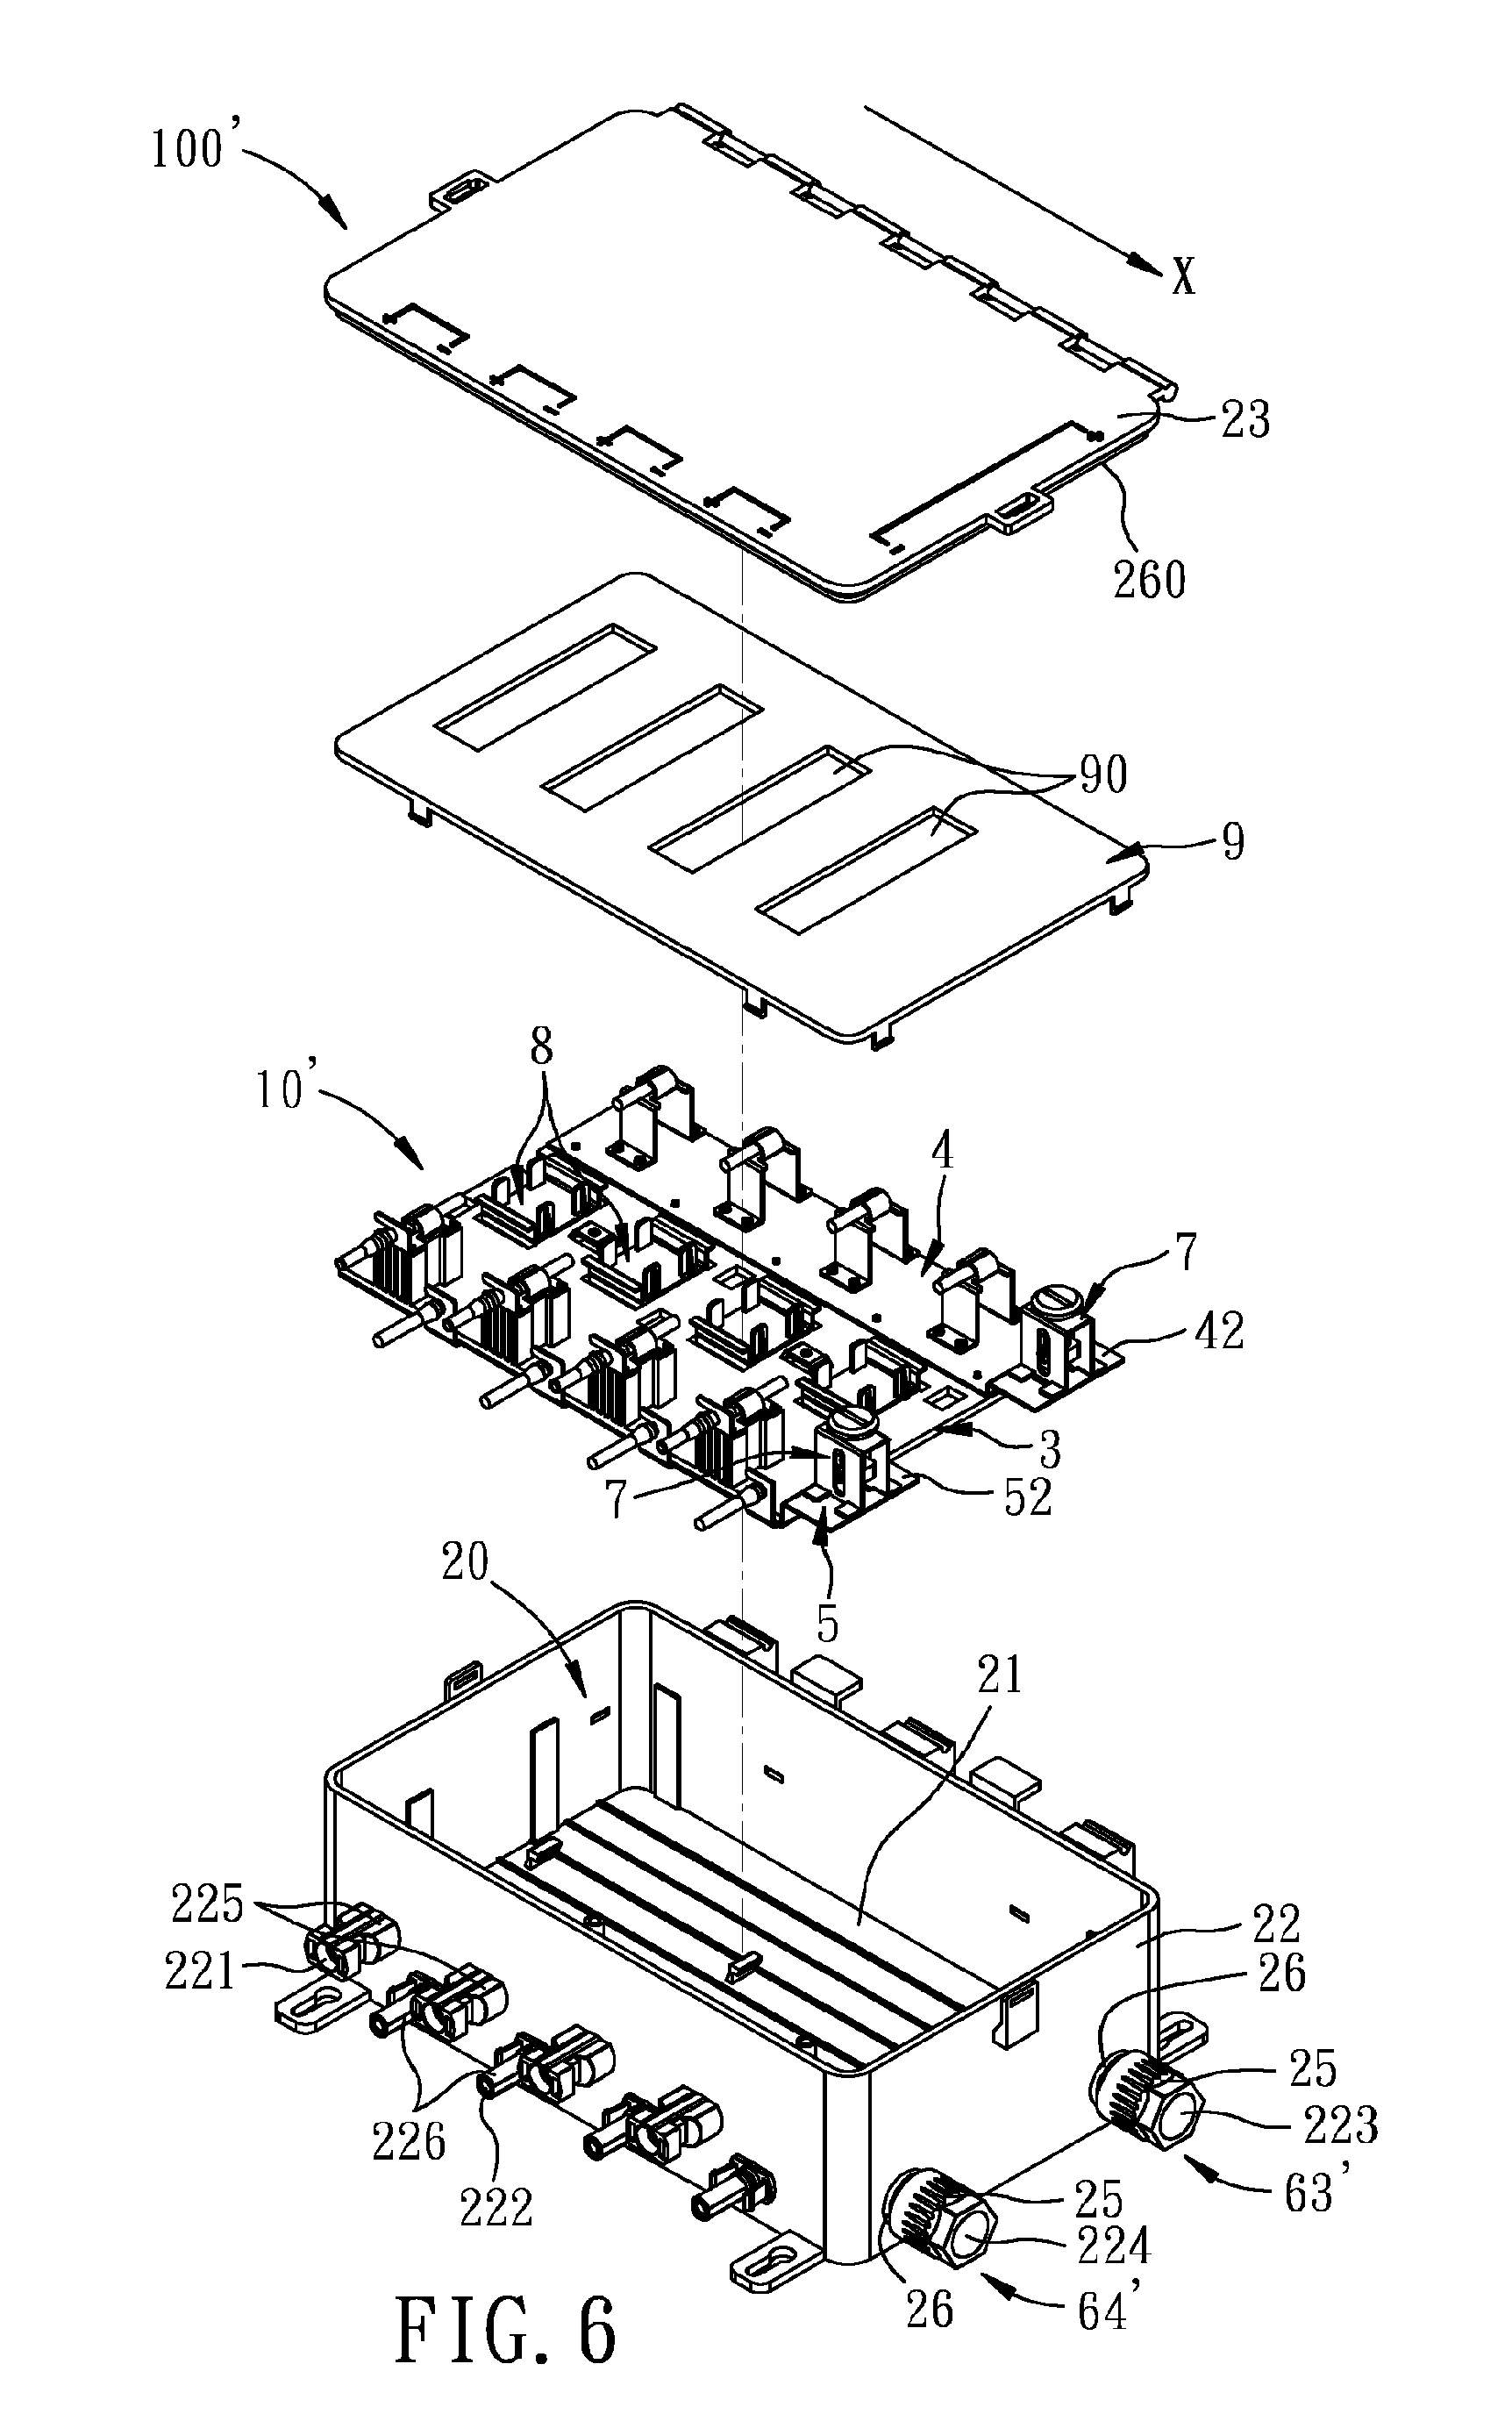 imgf0006 patent ep2584615a1 combiner box google patents,Wiring Combiner Bo To